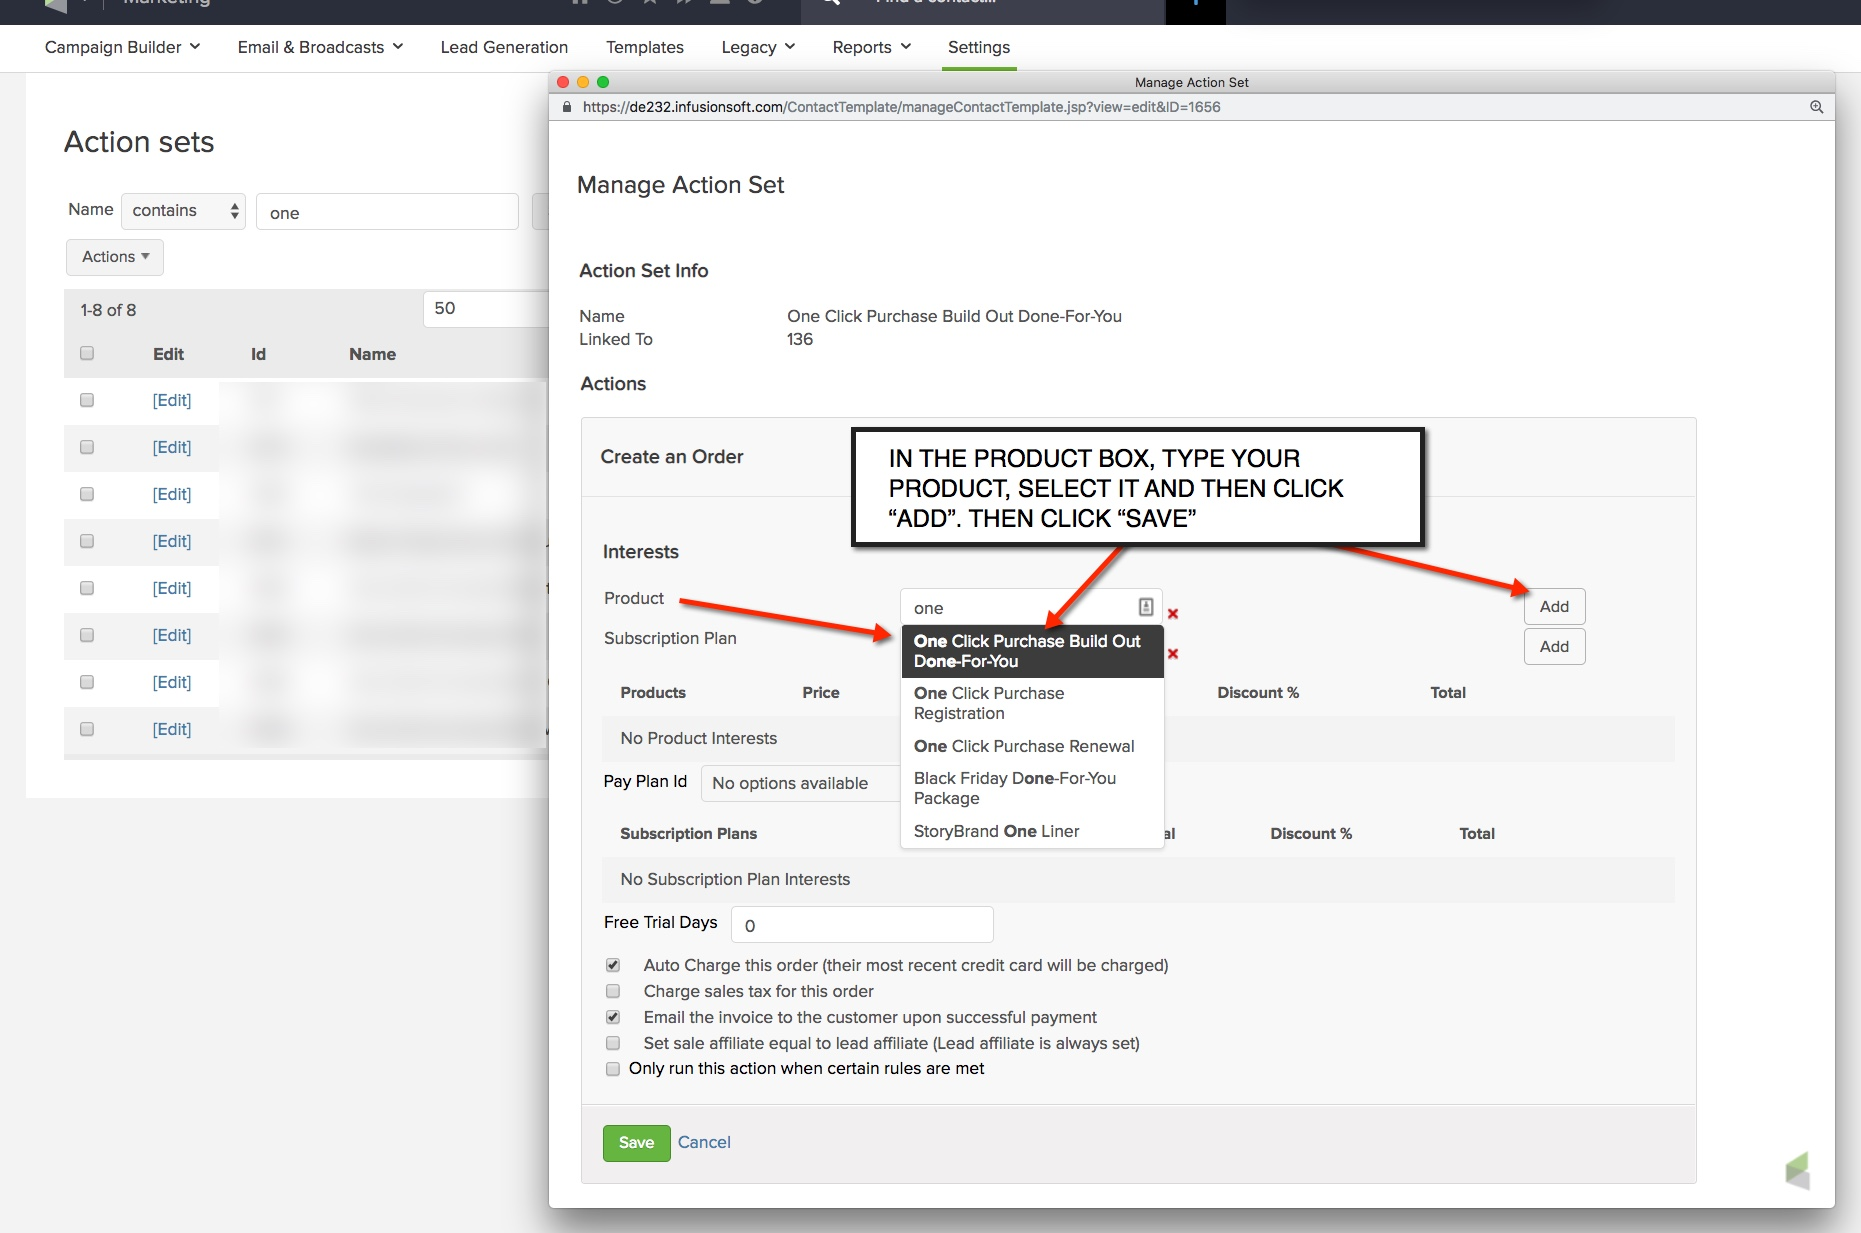 One Click Purchase Create Order Action Set